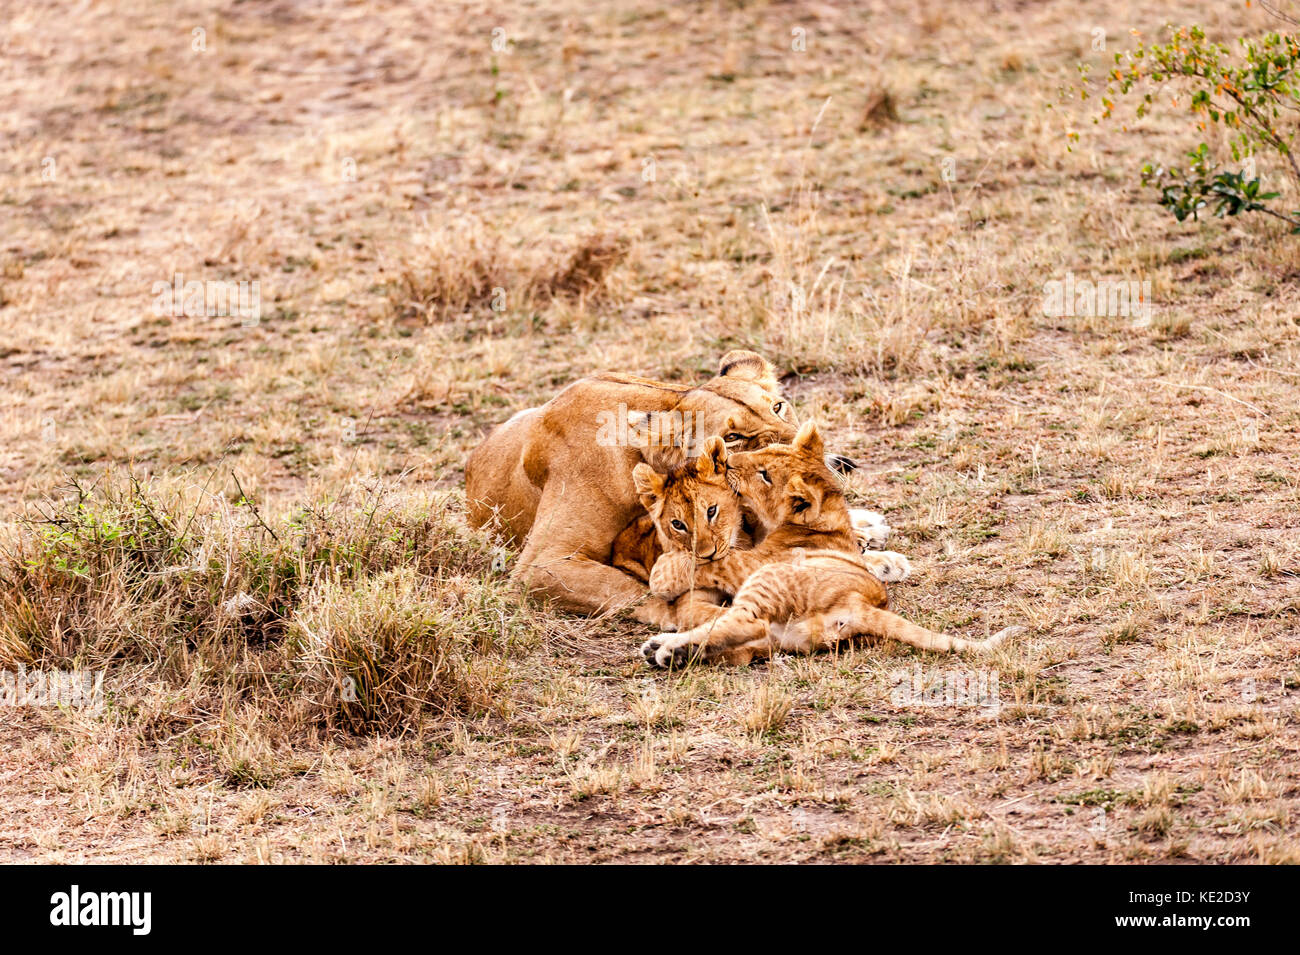 Female Lion with cubs in the Masai Mara, Kenya Stock Photo